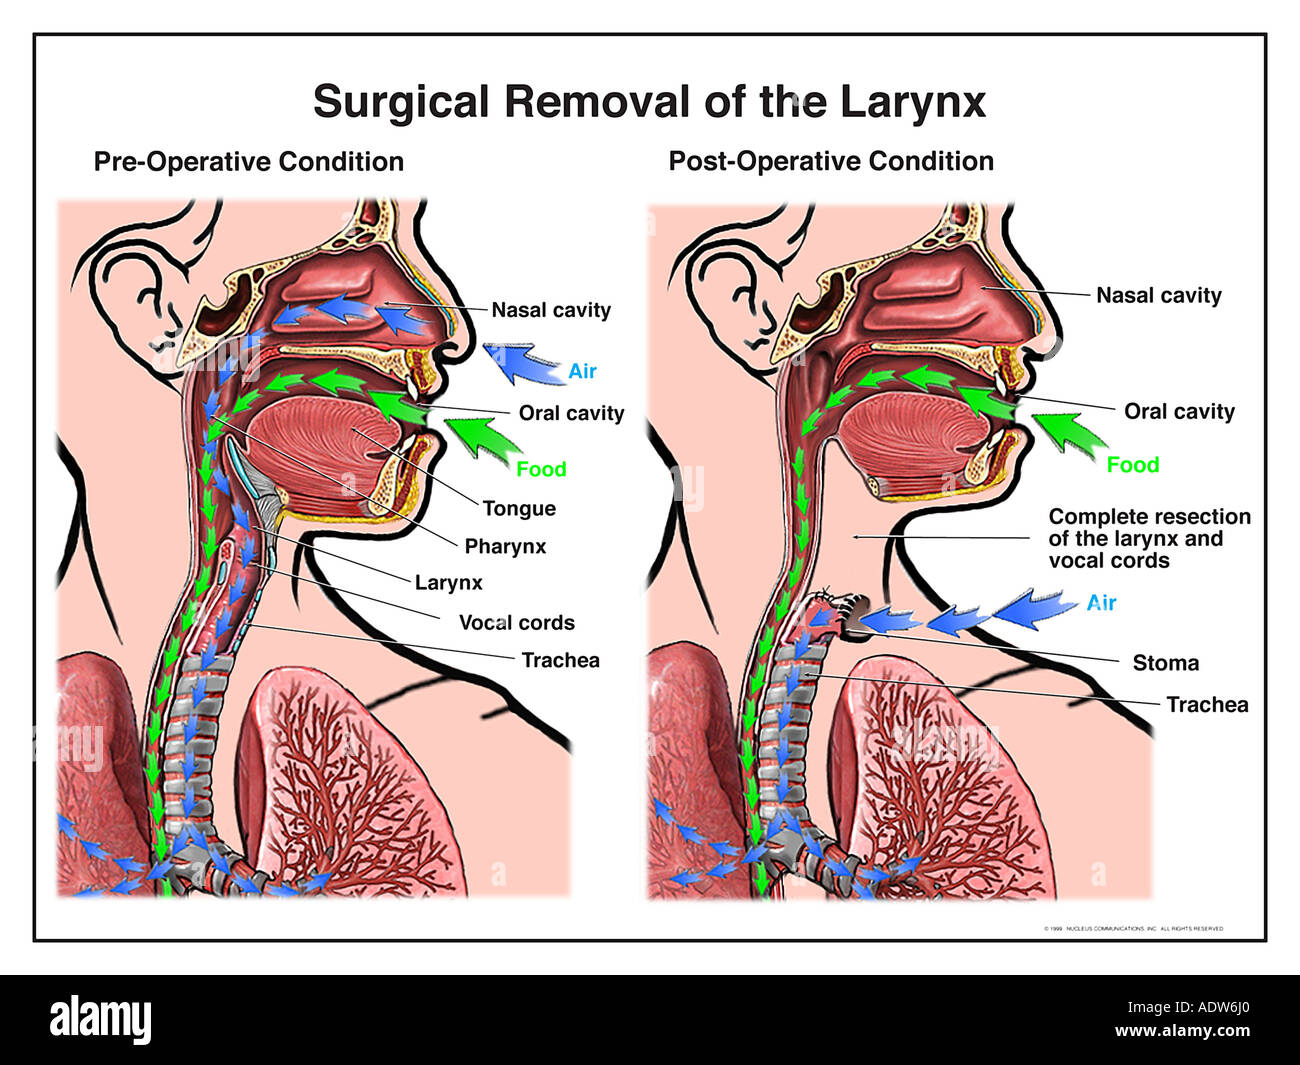 Surgical Removal Of The Larynx Stock Photo 7712159 Alamy